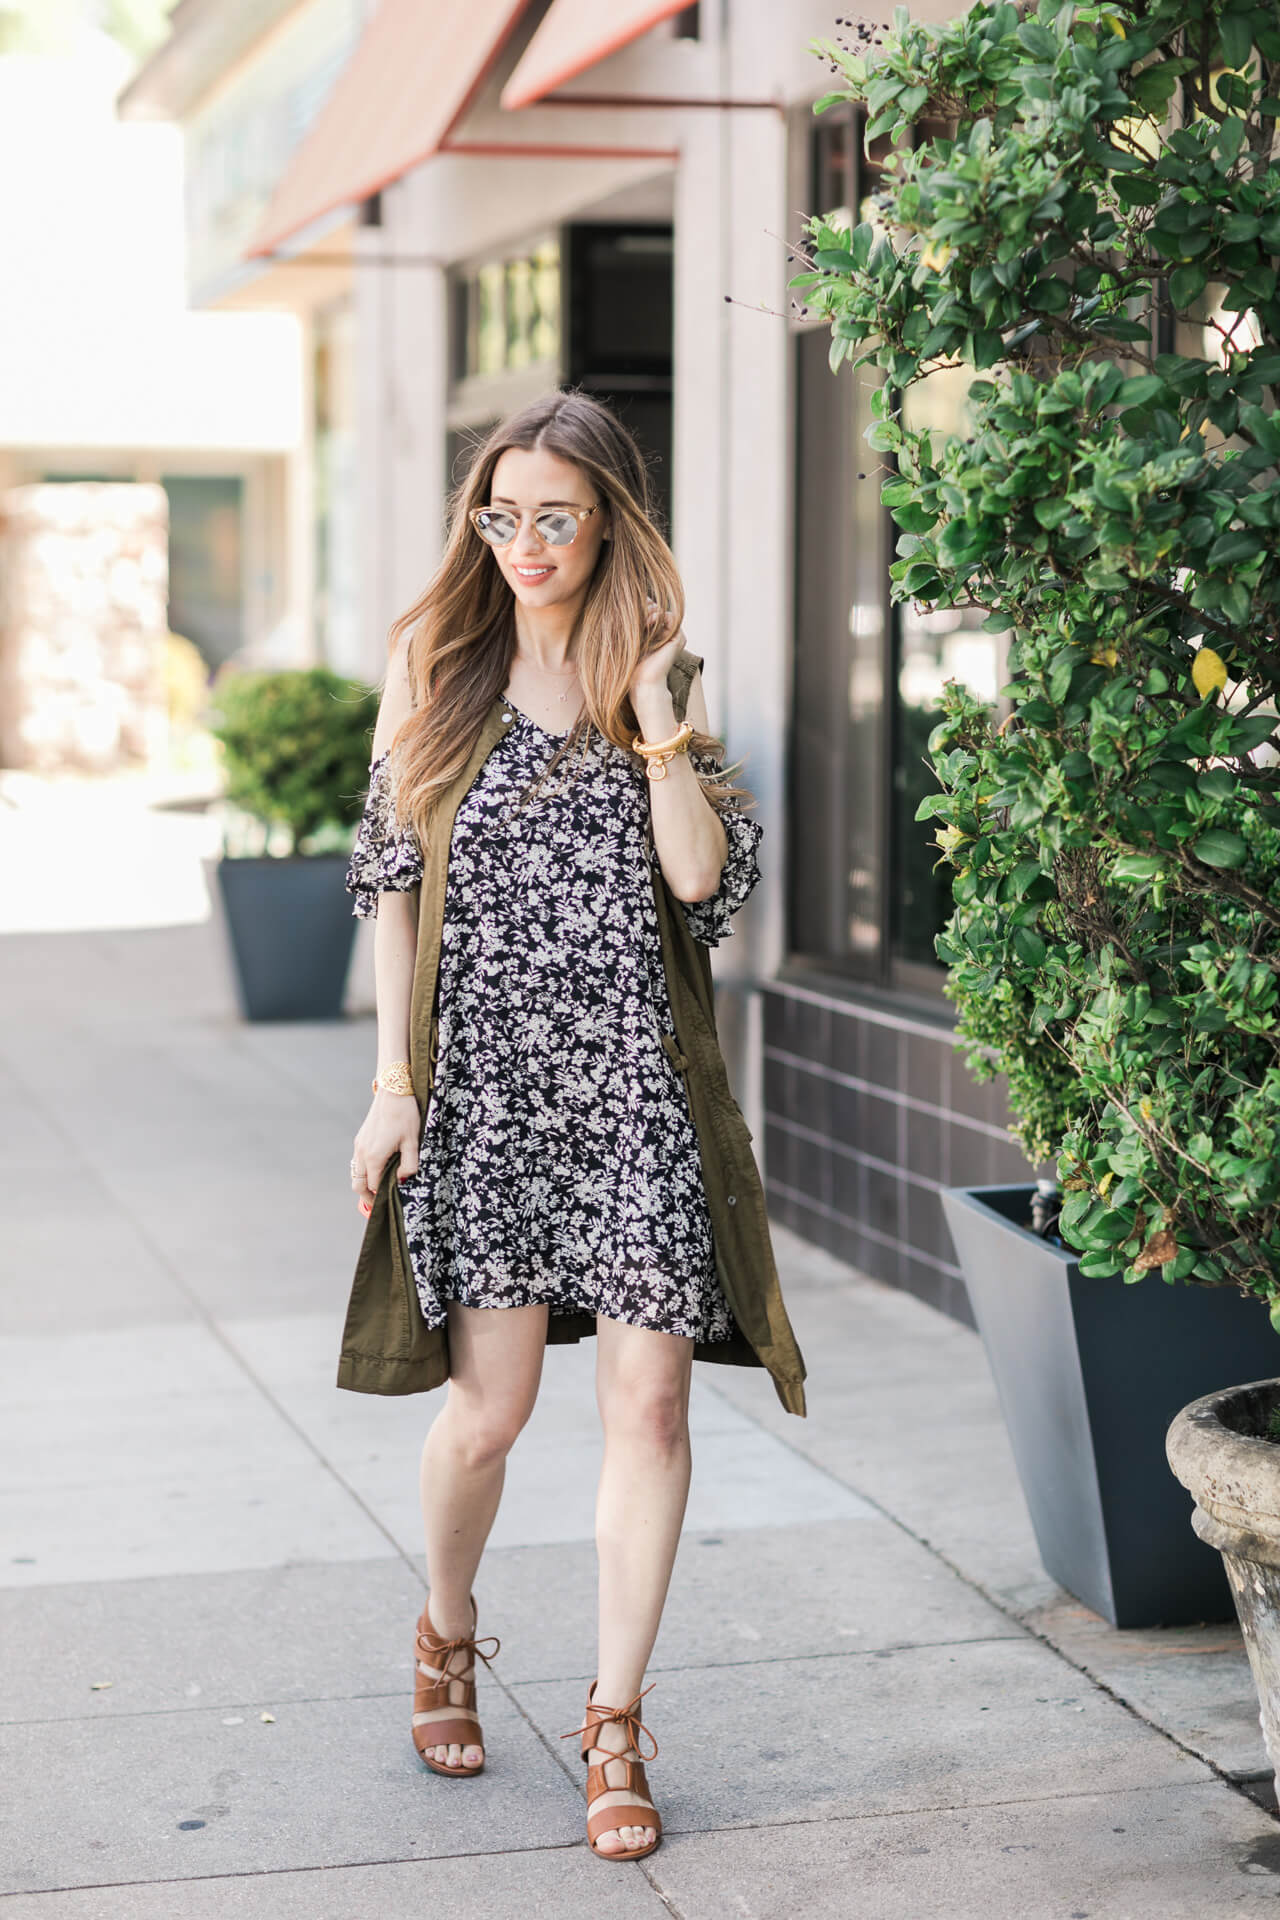 styling a cold shoulder dress for spring